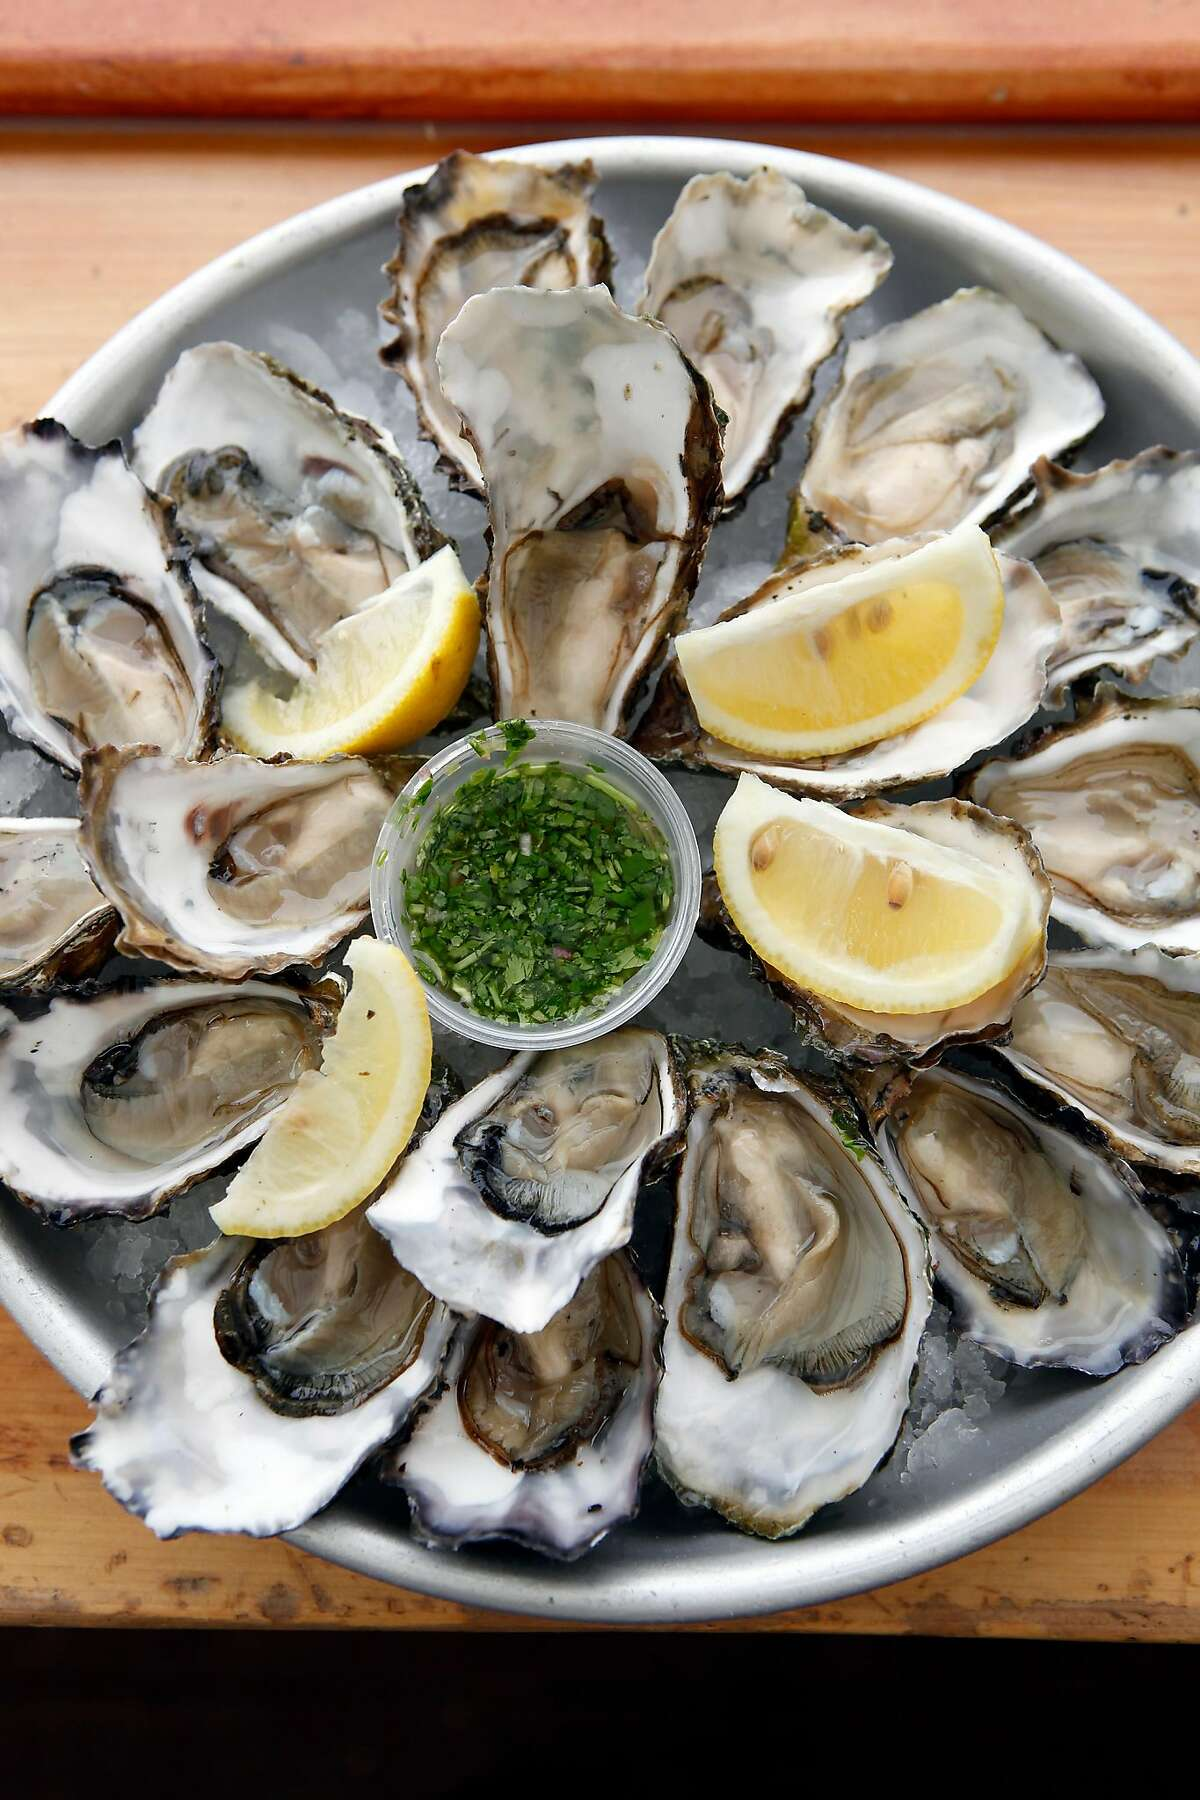 Boca Oyster Bar - BridgeportOyster special: $1.50 Bluepoint oysters Monday-Friday 3pm-6pmMenu